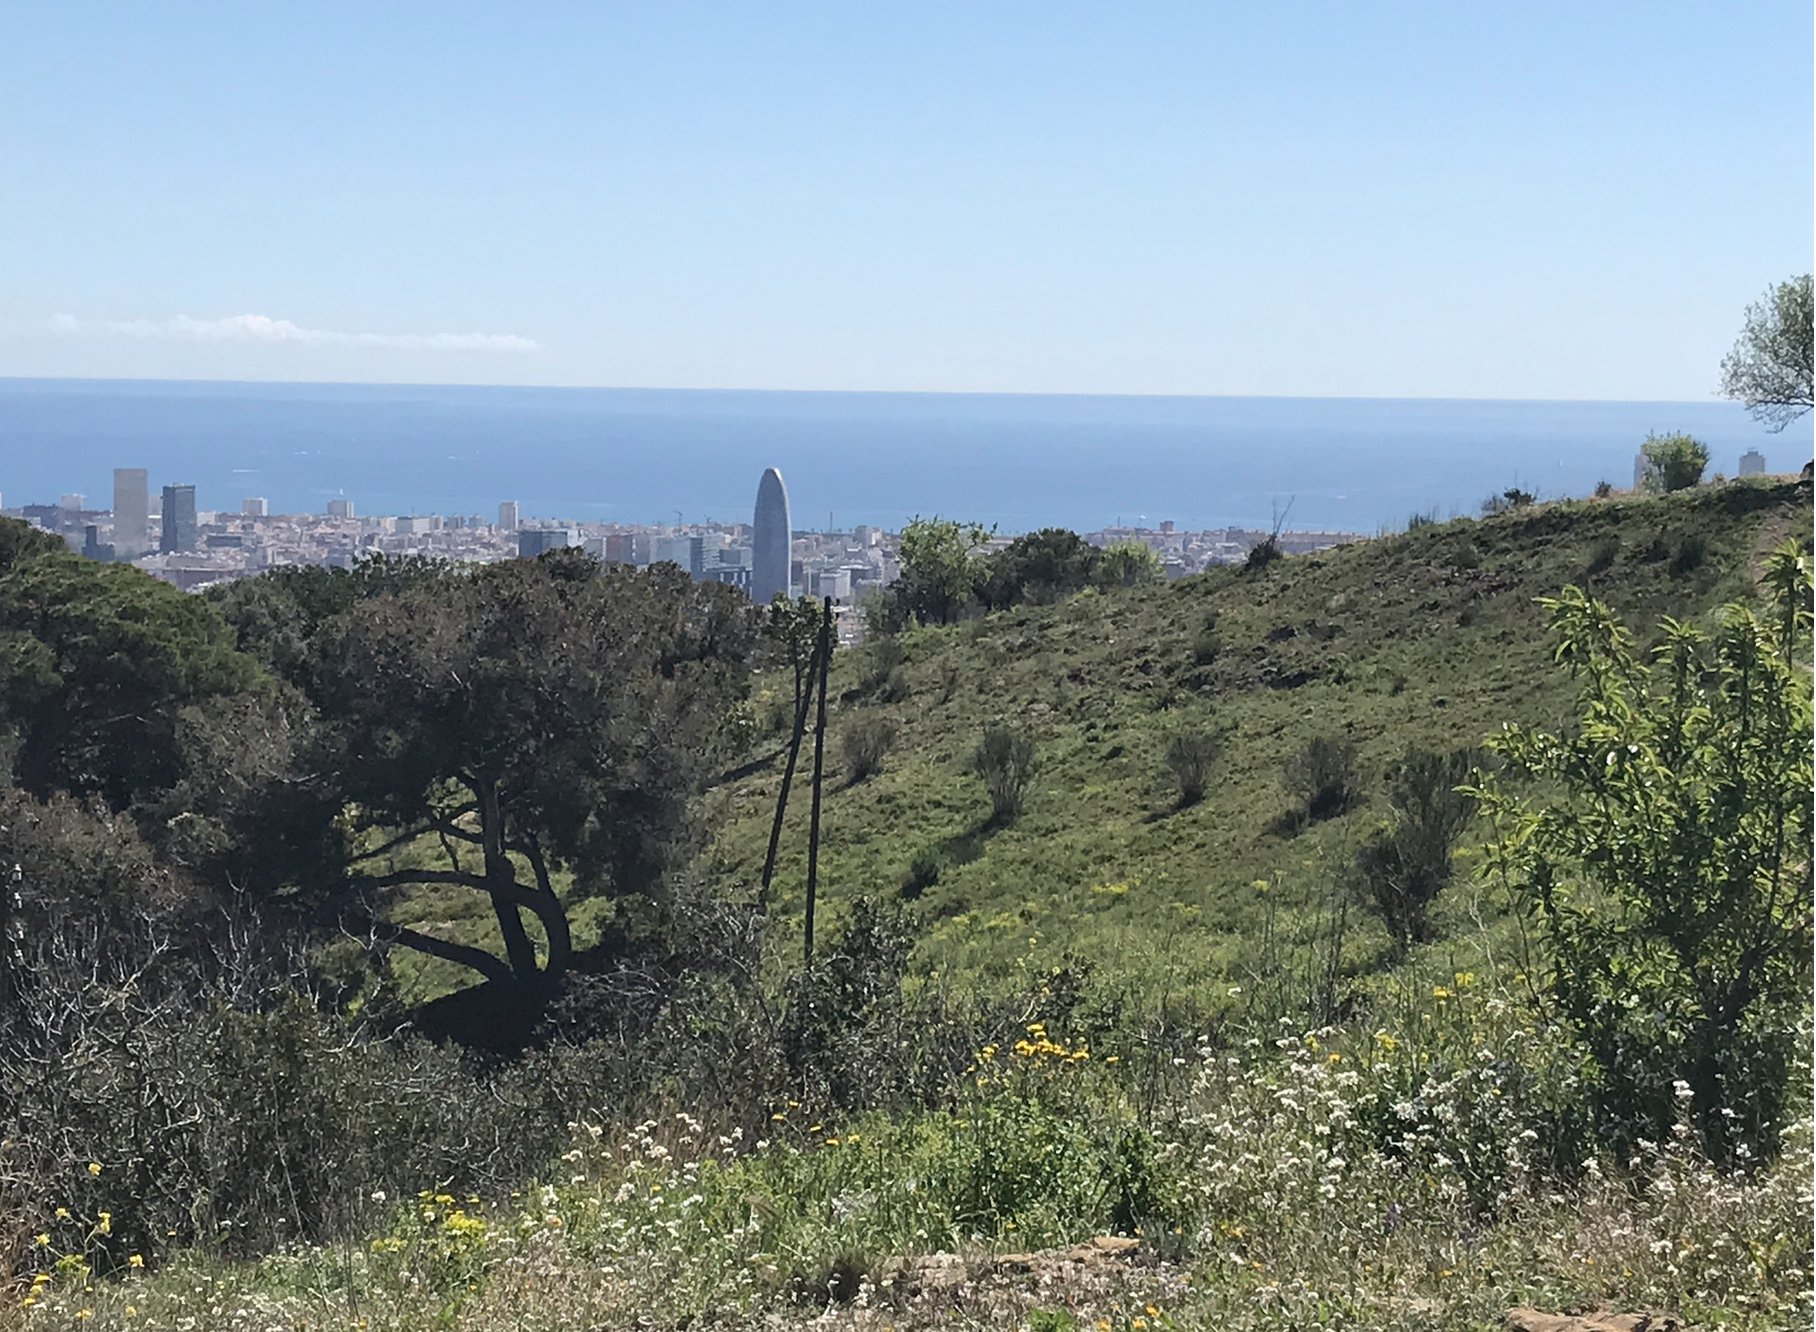 Beautiful view from Parc Guell, over looking the city of Barcelona